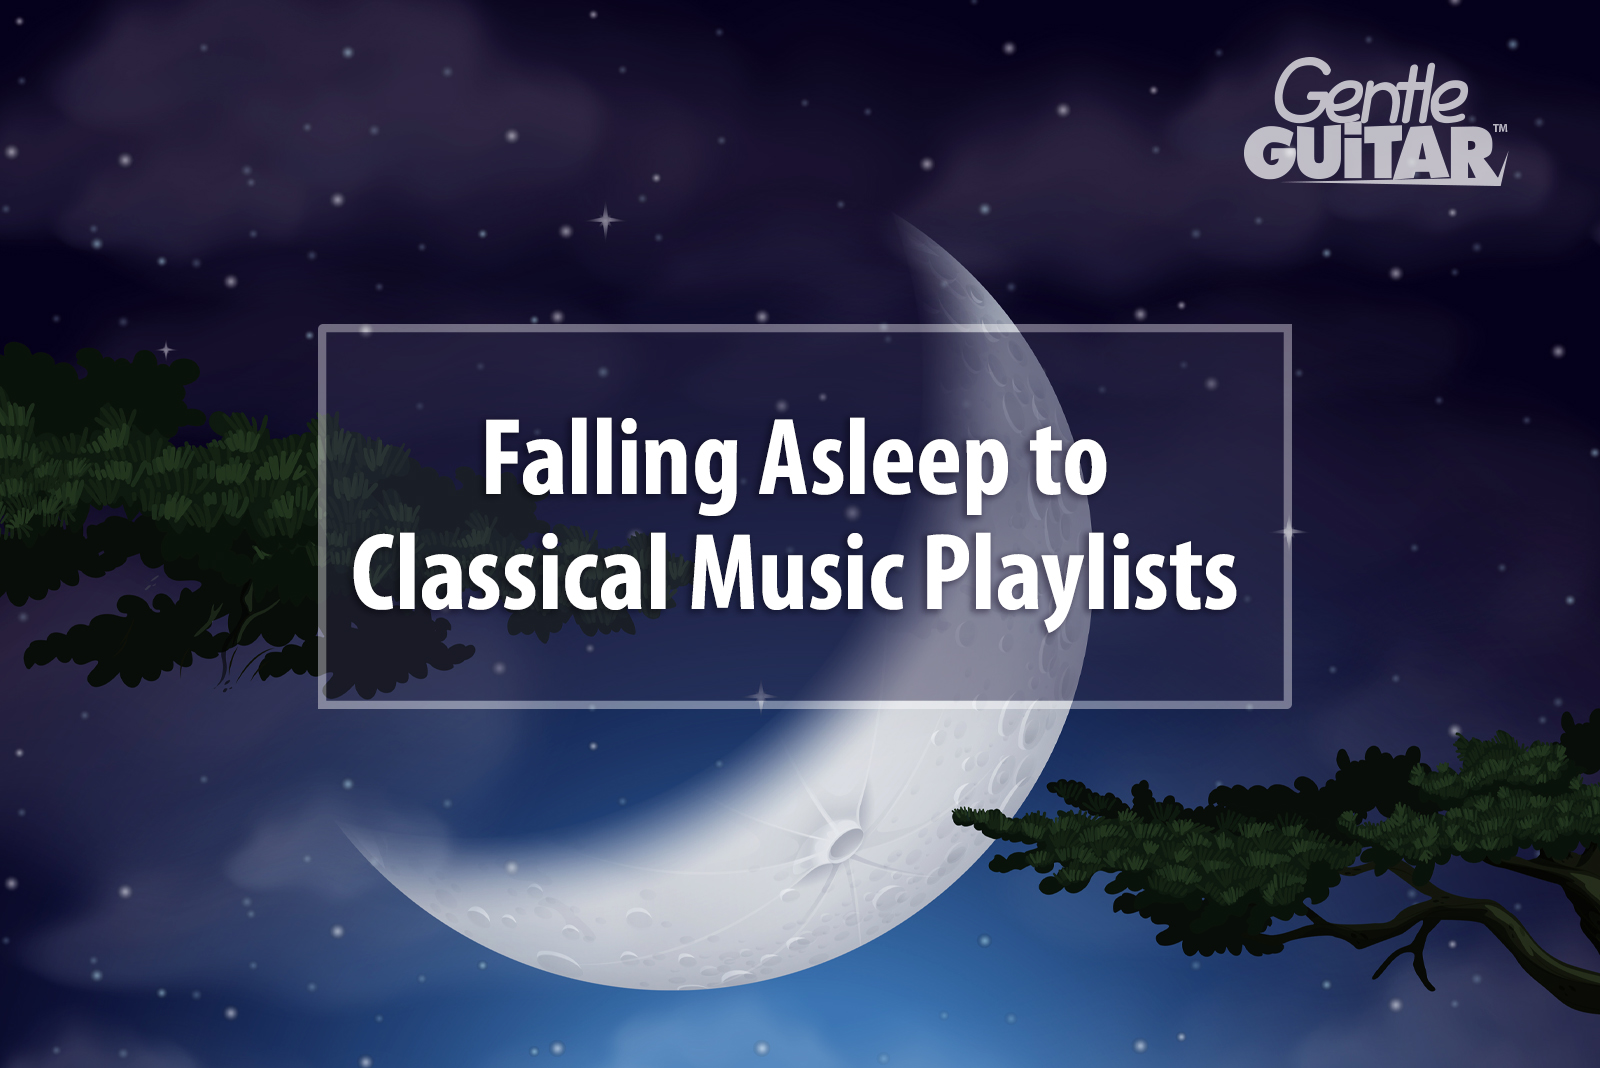 Falling Asleep to classical music